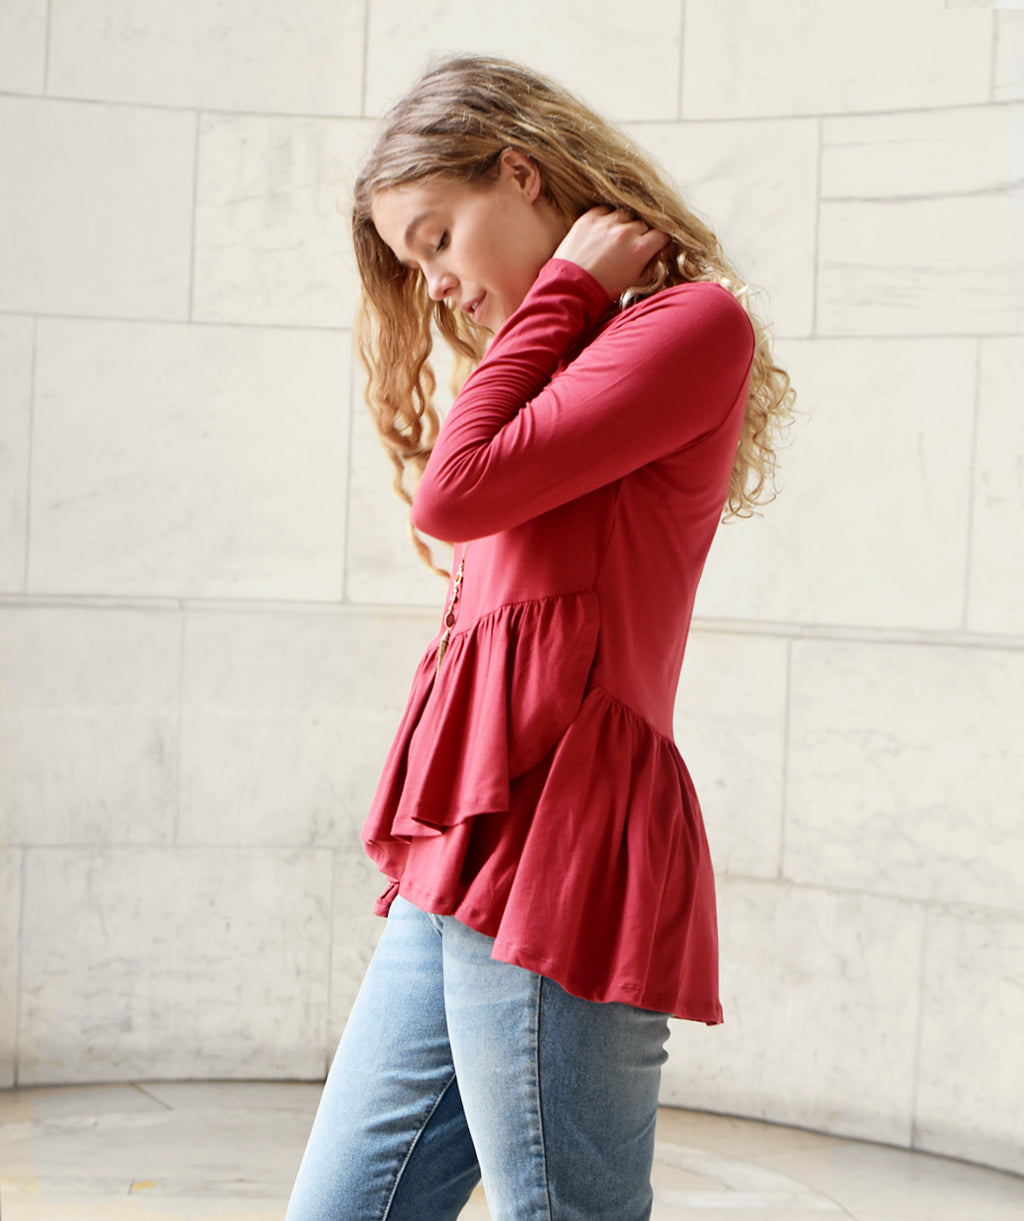 The WINTOUR top in Auburn Red